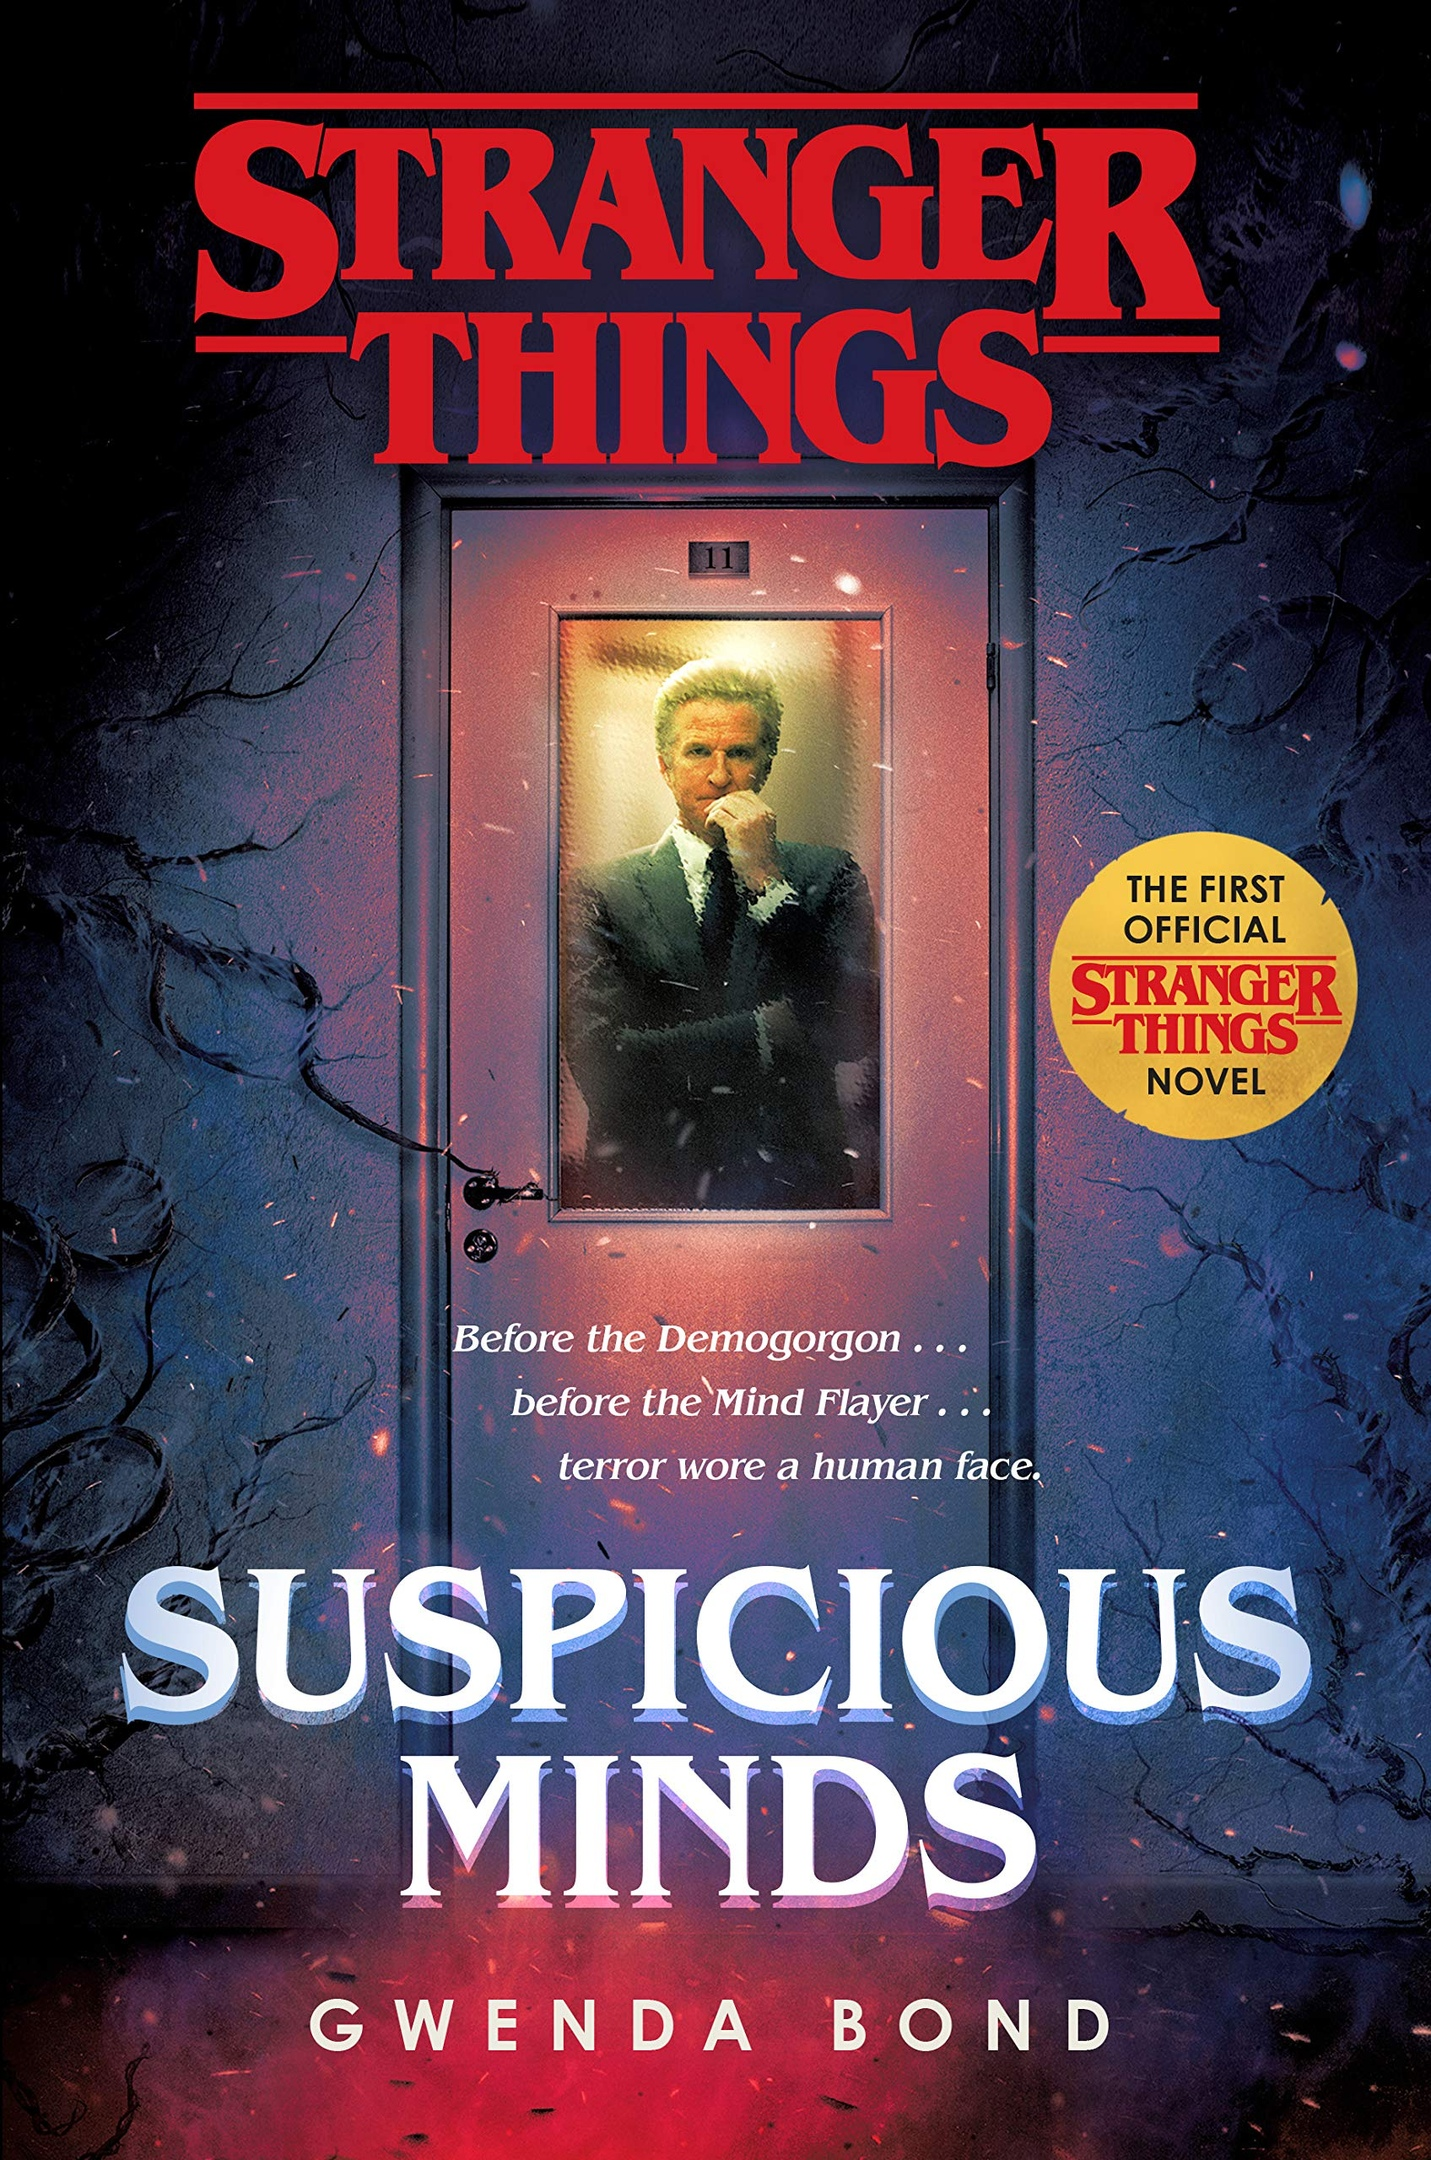 Gwenda Bond – Stranger Things: Suspicious Minds